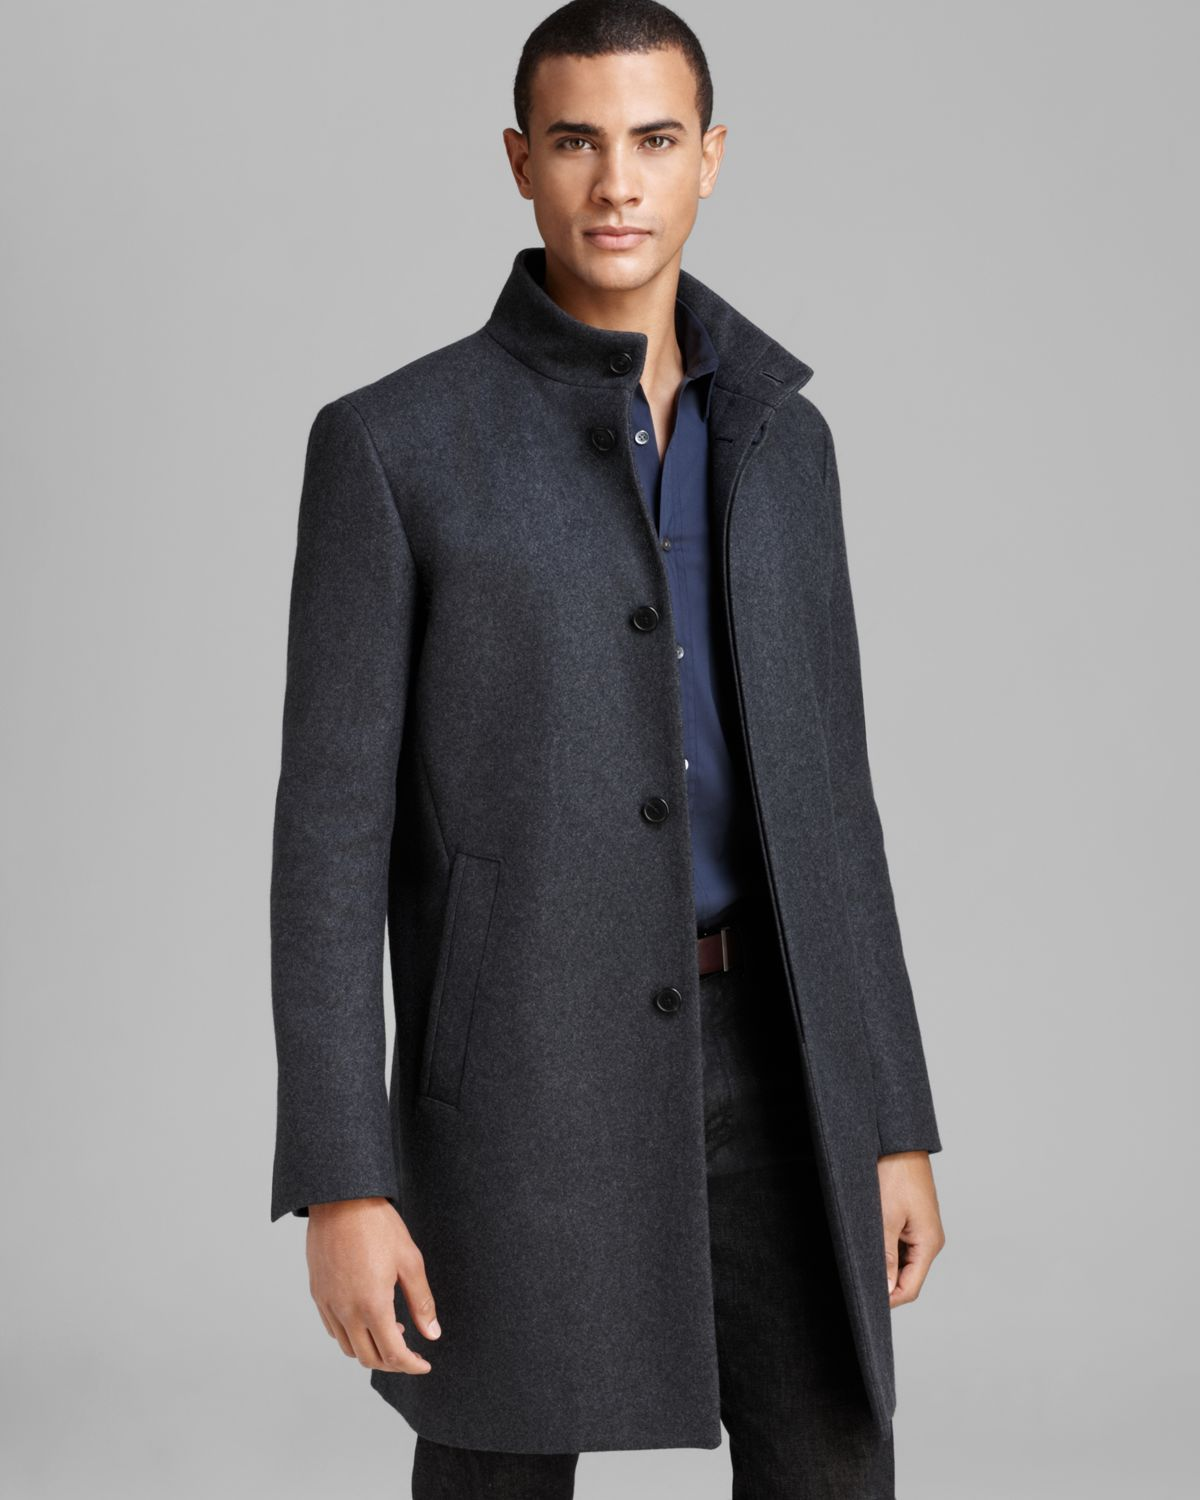 Theory Wool Belvin Vp Voedar Coat In Charcoal Gray For